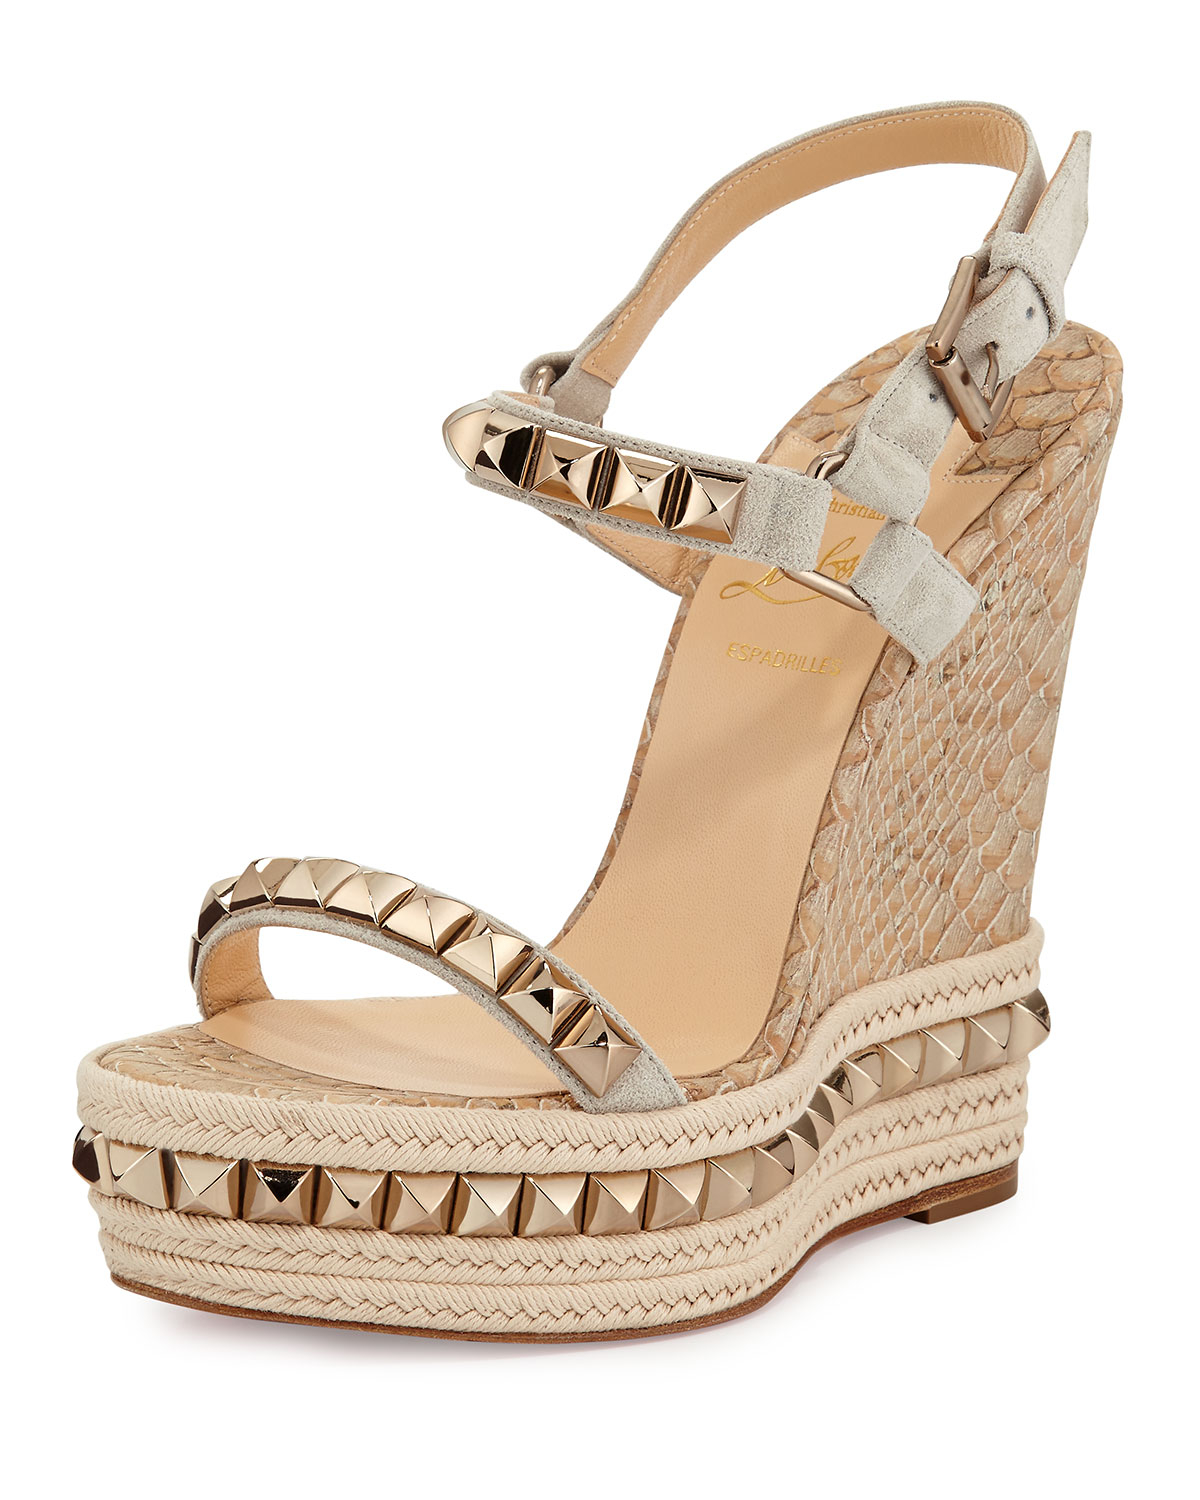 d54f3f7438c Lyst - Christian Louboutin Cataclou Python-embossed Cork Wedge in Brown